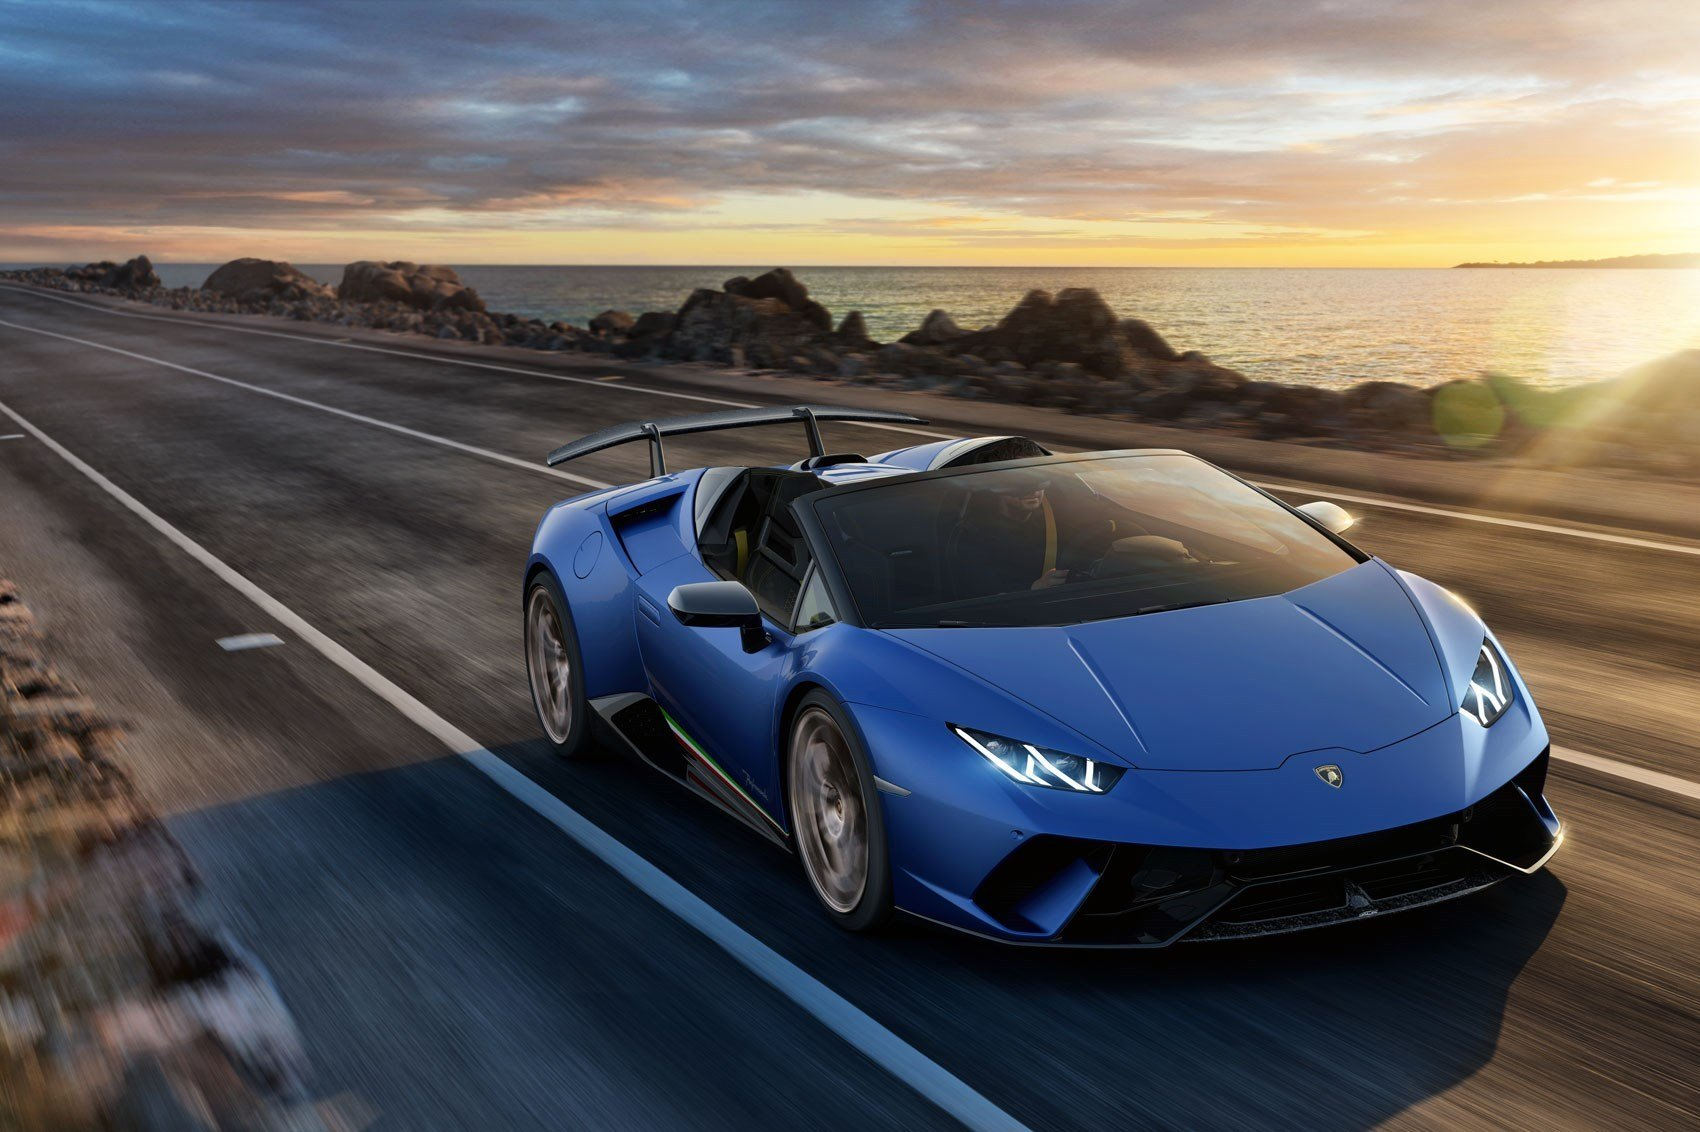 New Lamborghini Huracan Performante Spyder H*Rdc*R* And On This Month